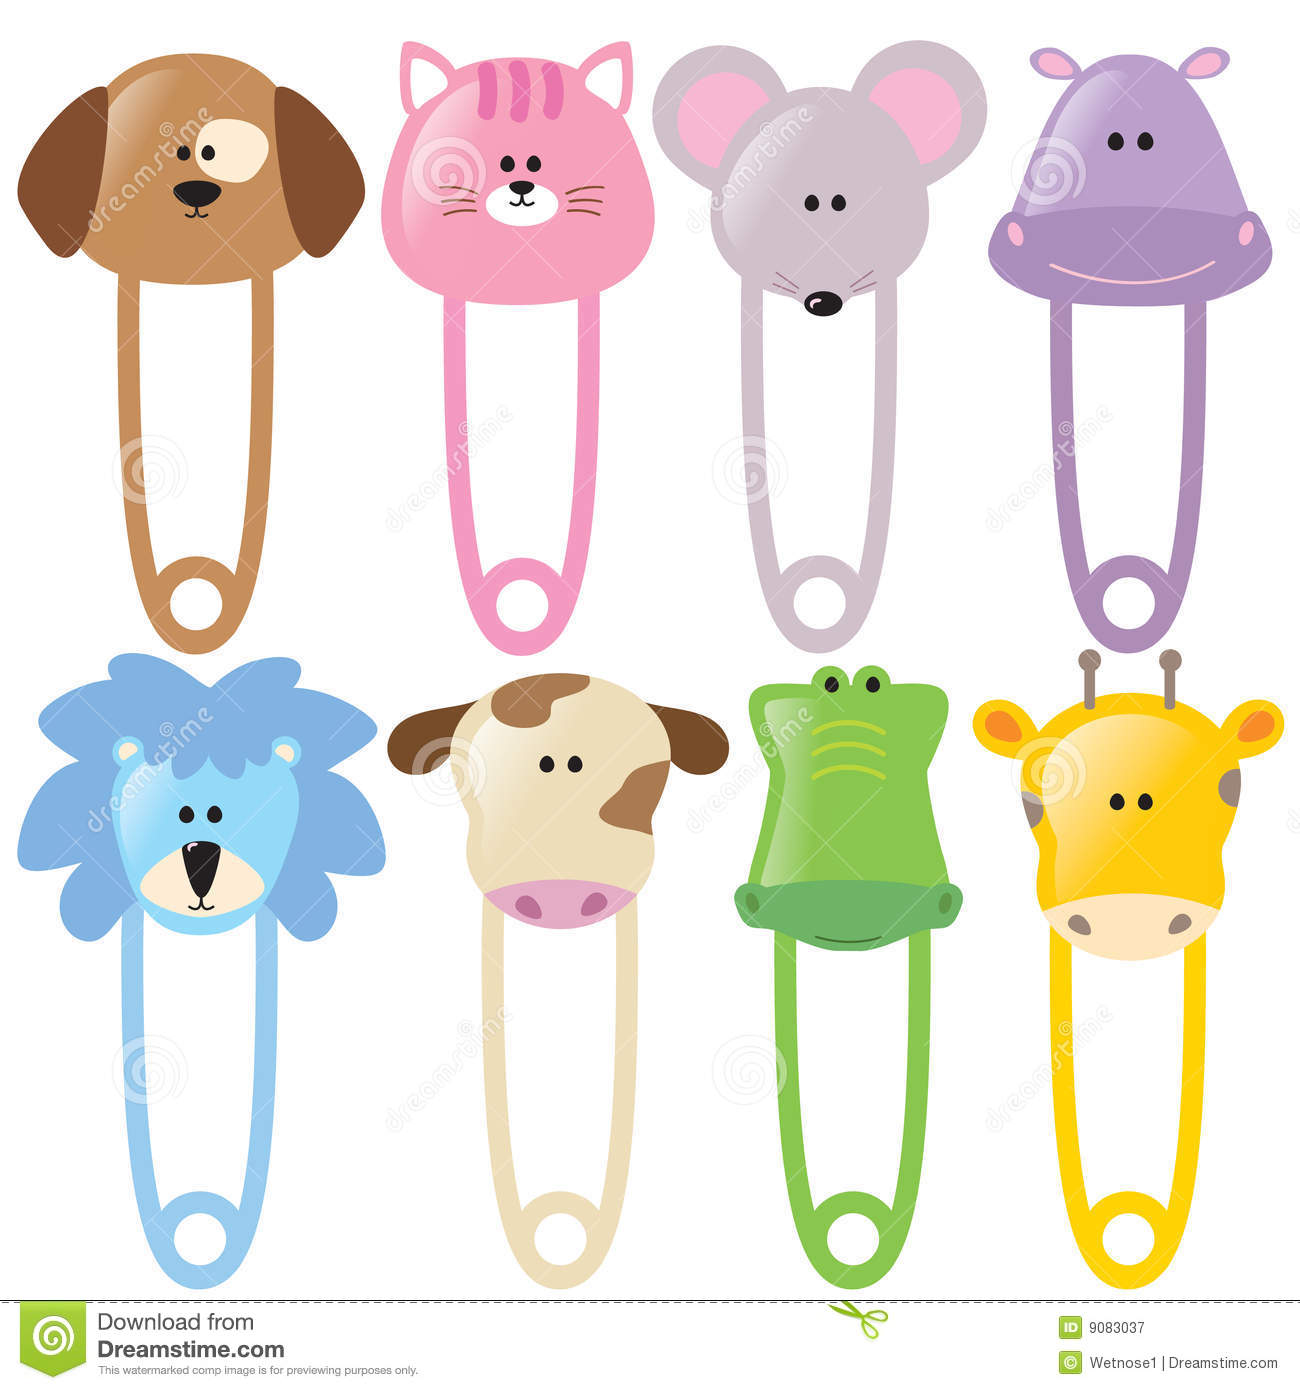 Sweet twins royalty free stock photo image 10320675 - Animal Baby Safety Pins Set 2 Isolated Royalty Free Stock Photography